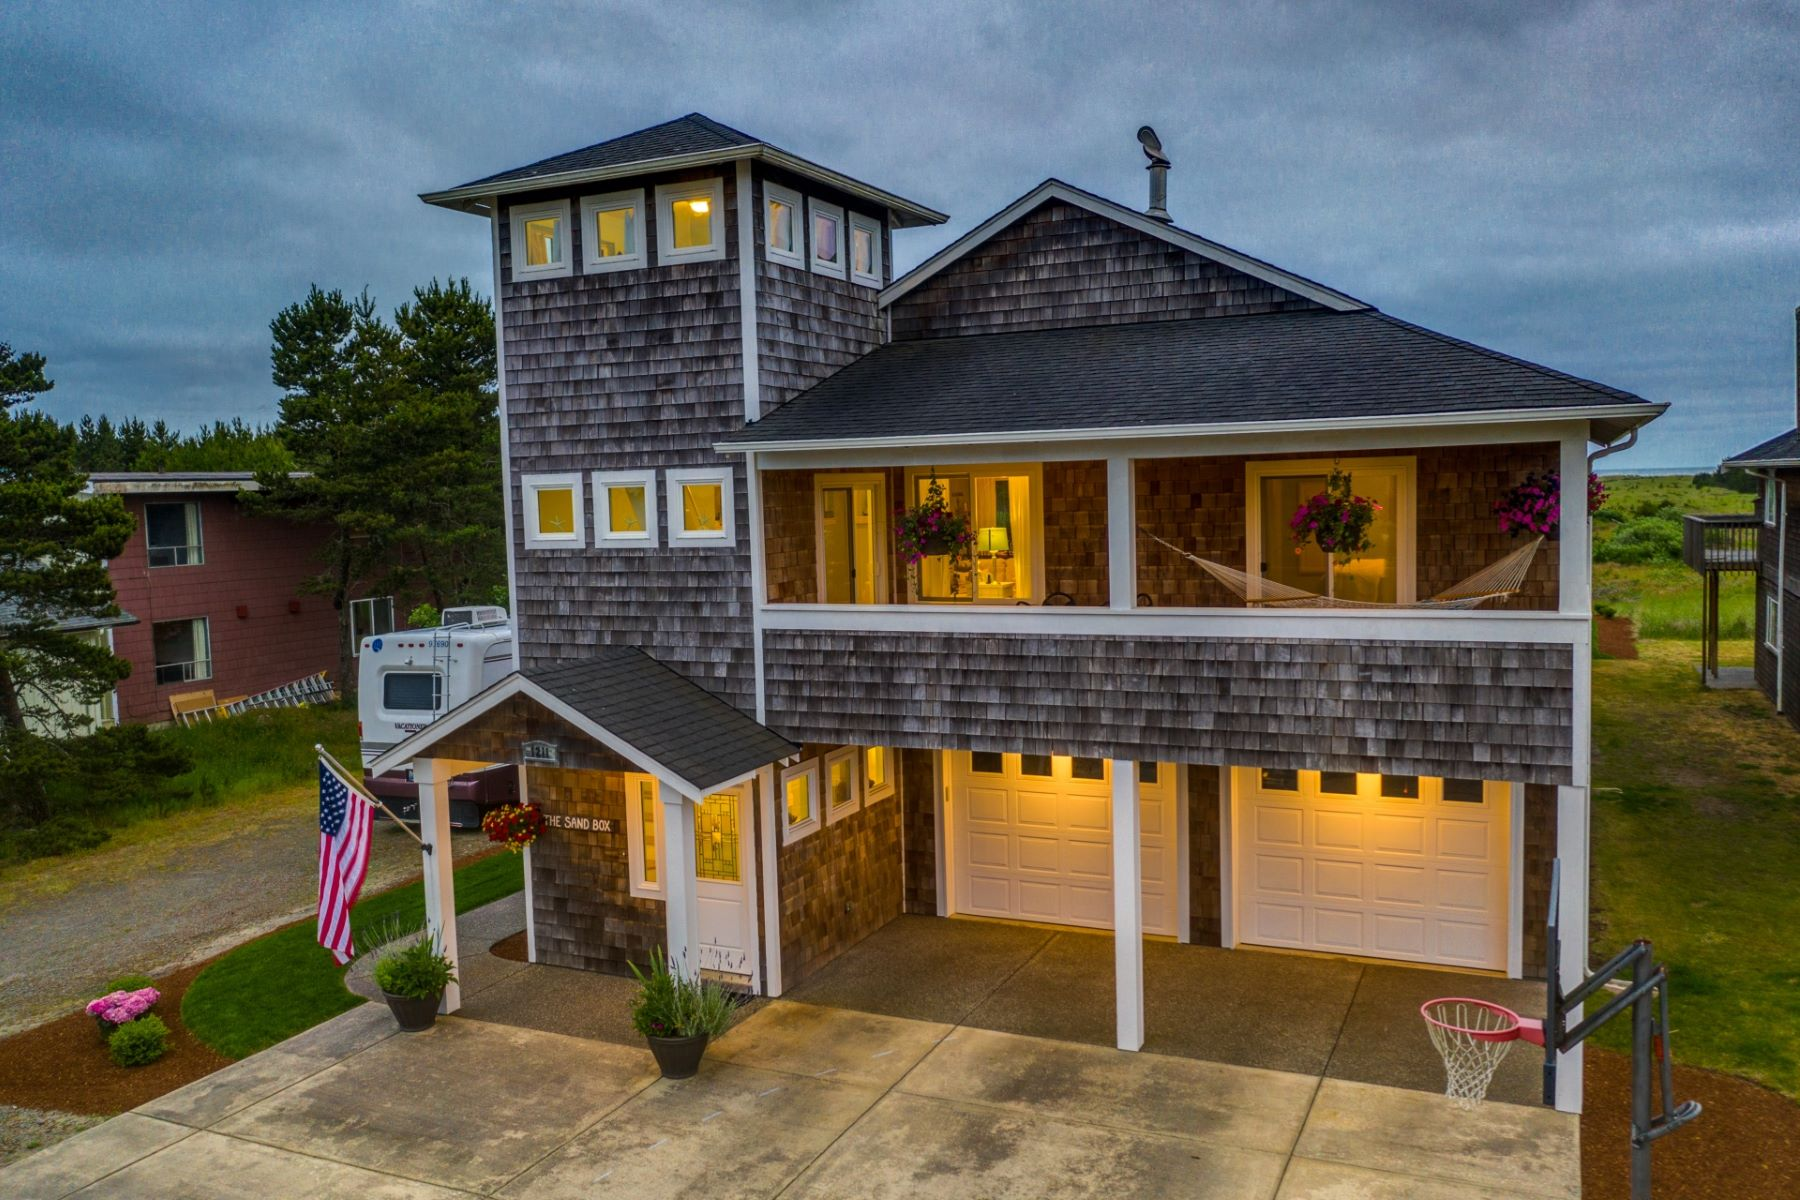 Single Family Homes for Sale at Luxury Beach Home with Ocean Views! 1211 Ocean Beach Blvd Long Beach, Washington 98631 United States